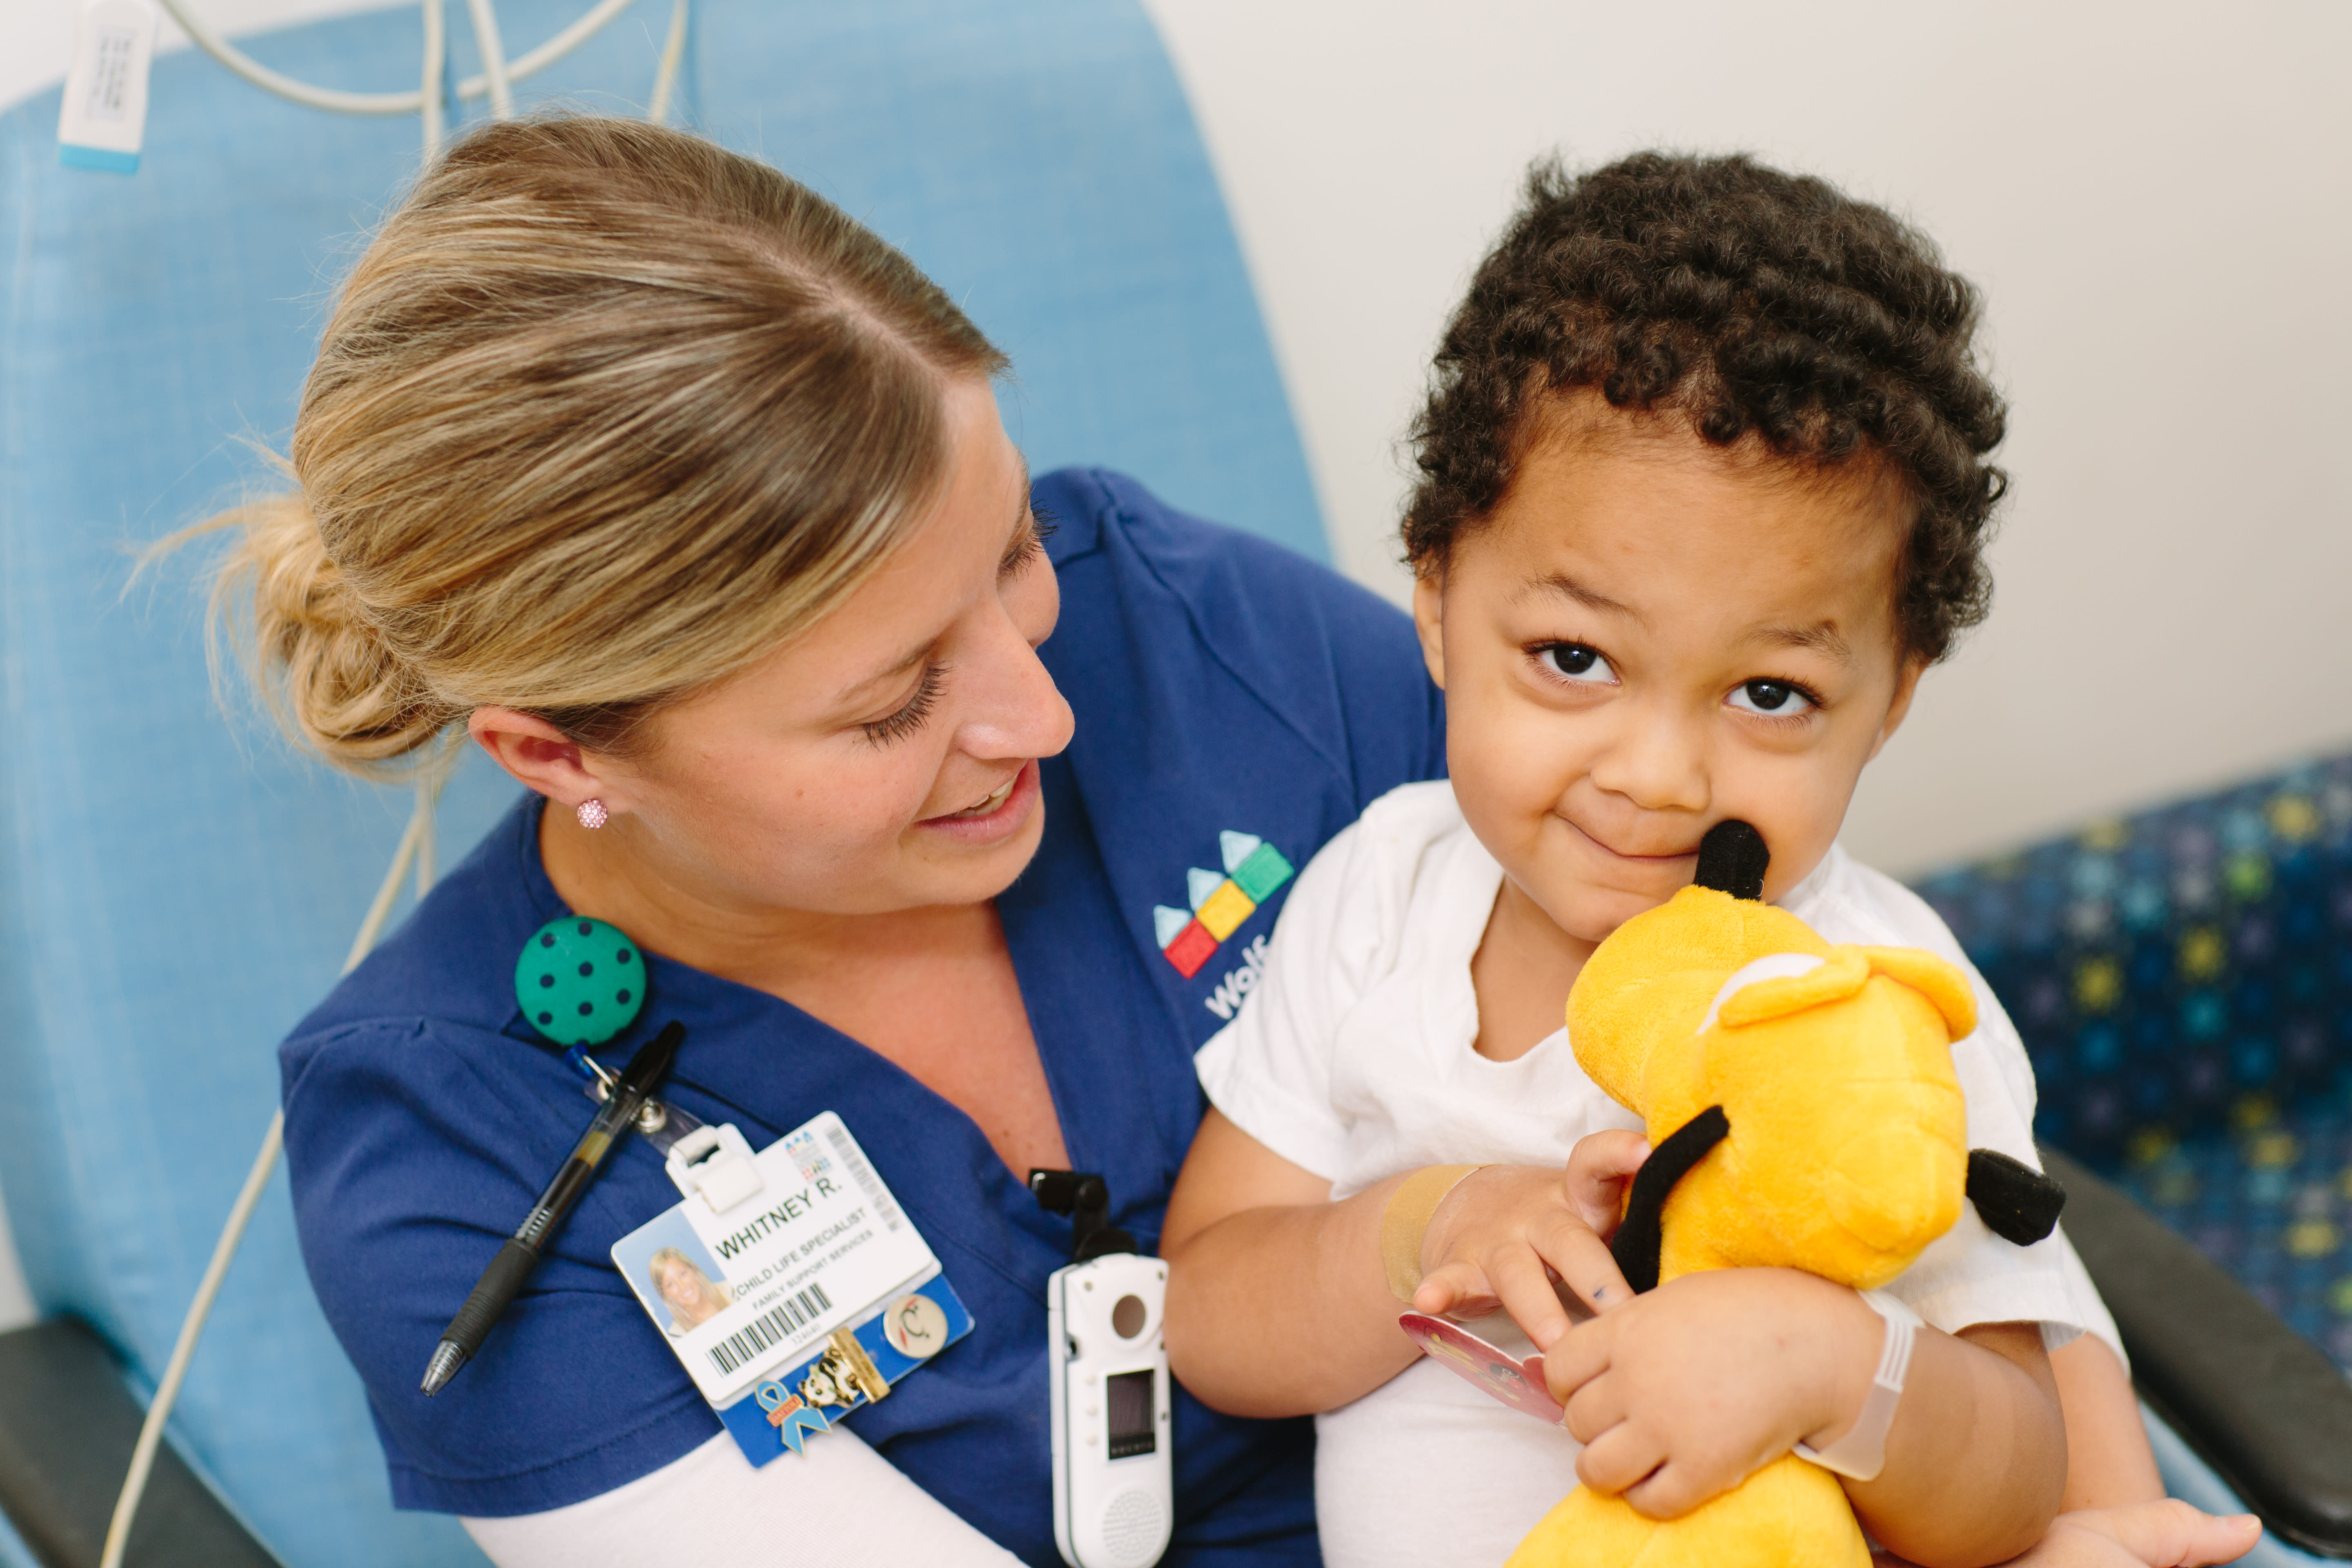 Young child with a stuffed animal being held by a nurse